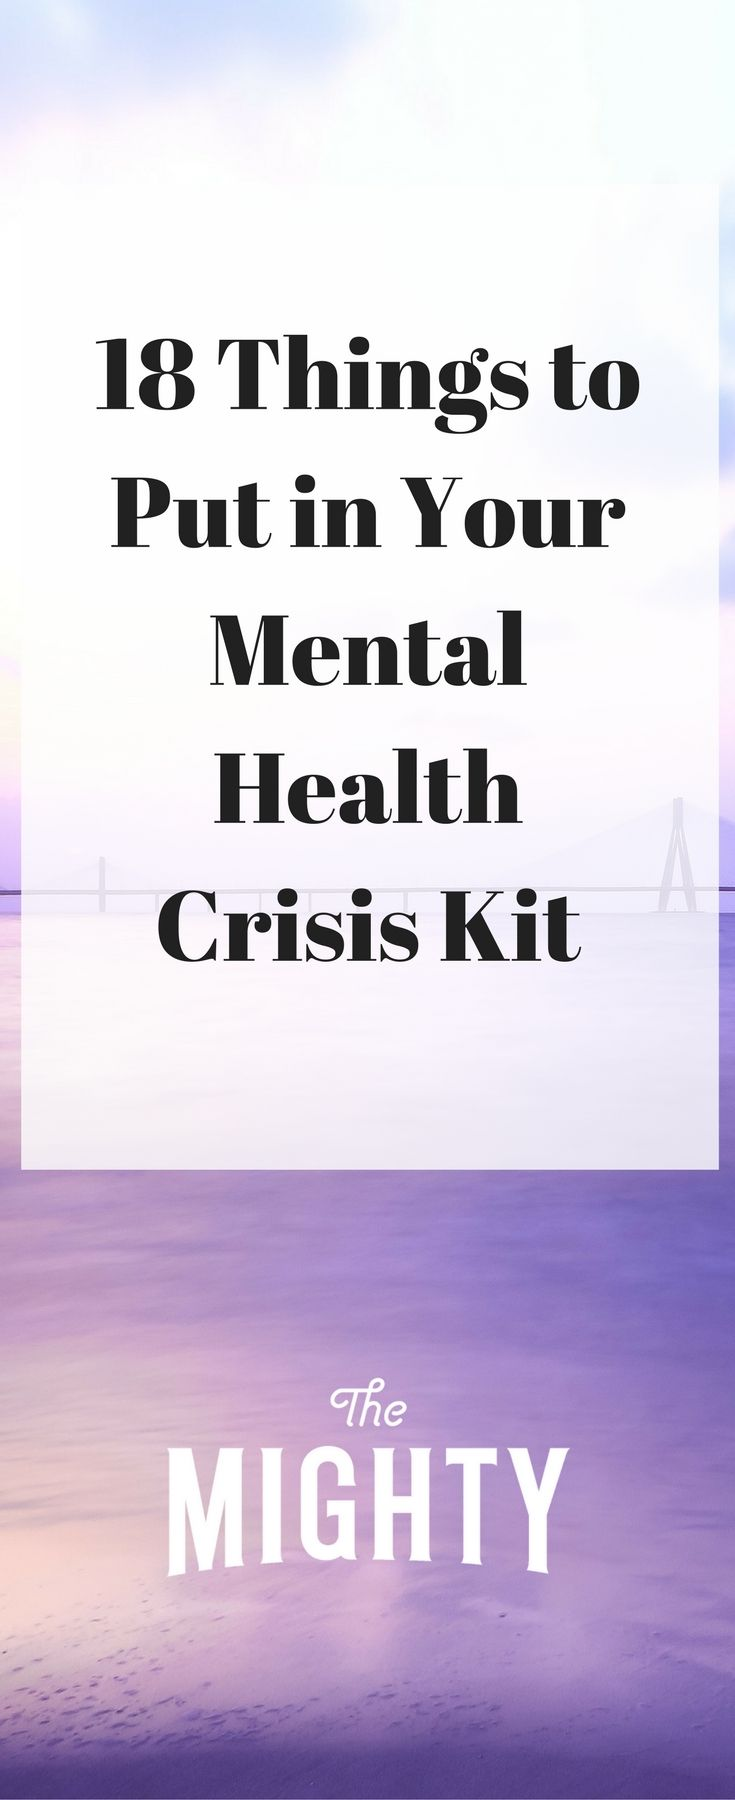 18 Things to Put in Your Mental Health Crisis Kit | The Mighty